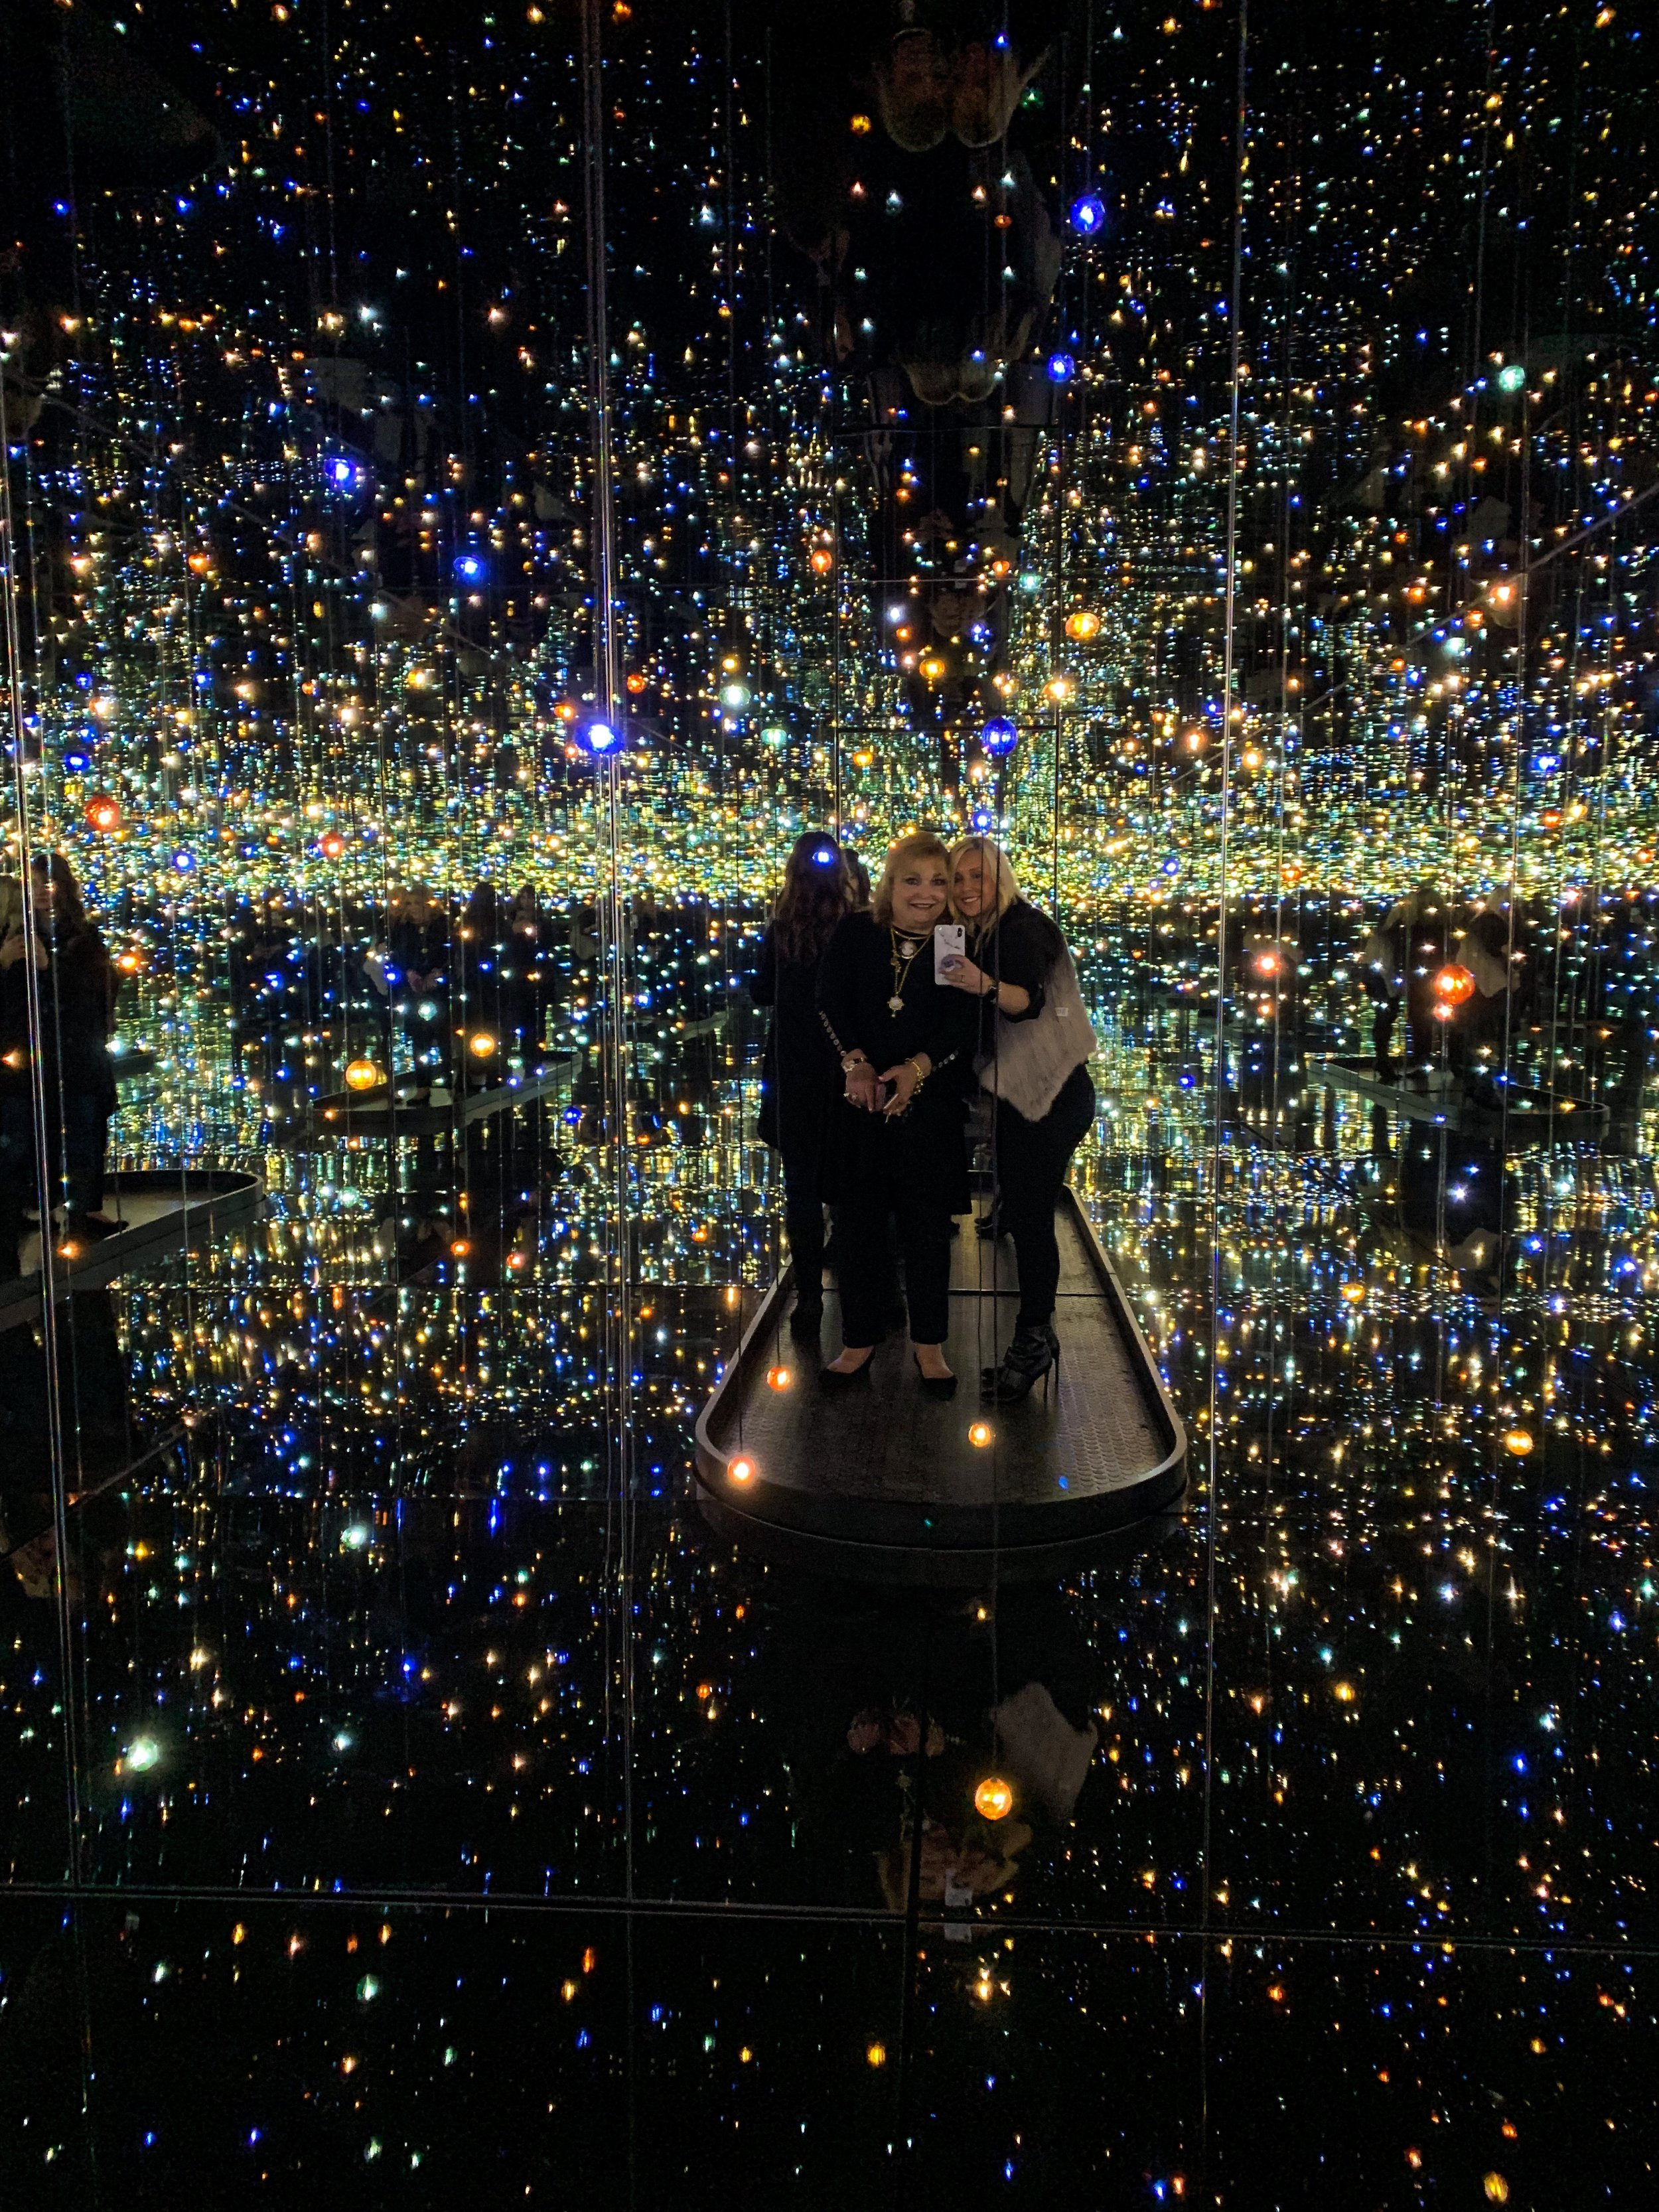 Infinity Mirrored Room- The Souls Of Millions Of Light Years Away, 2013